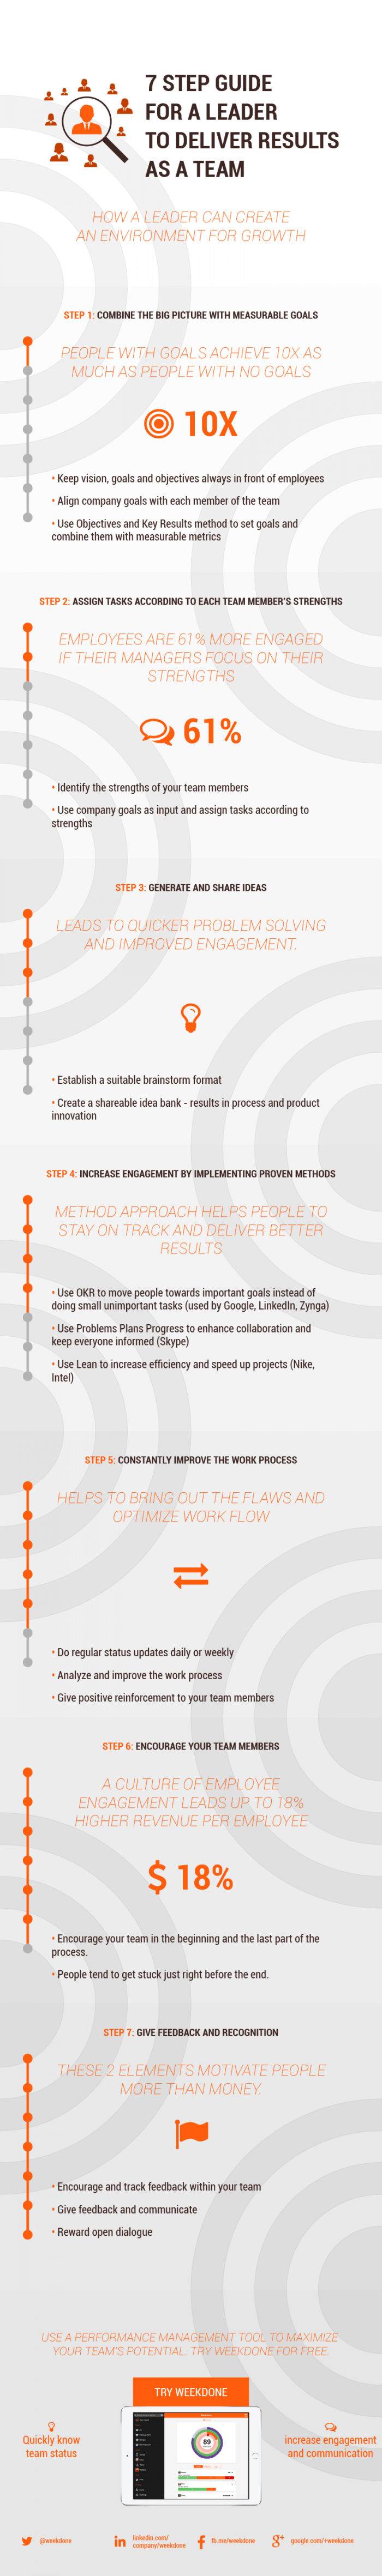 7 Step Guide for a Leader to Deliver Results Infographic Image